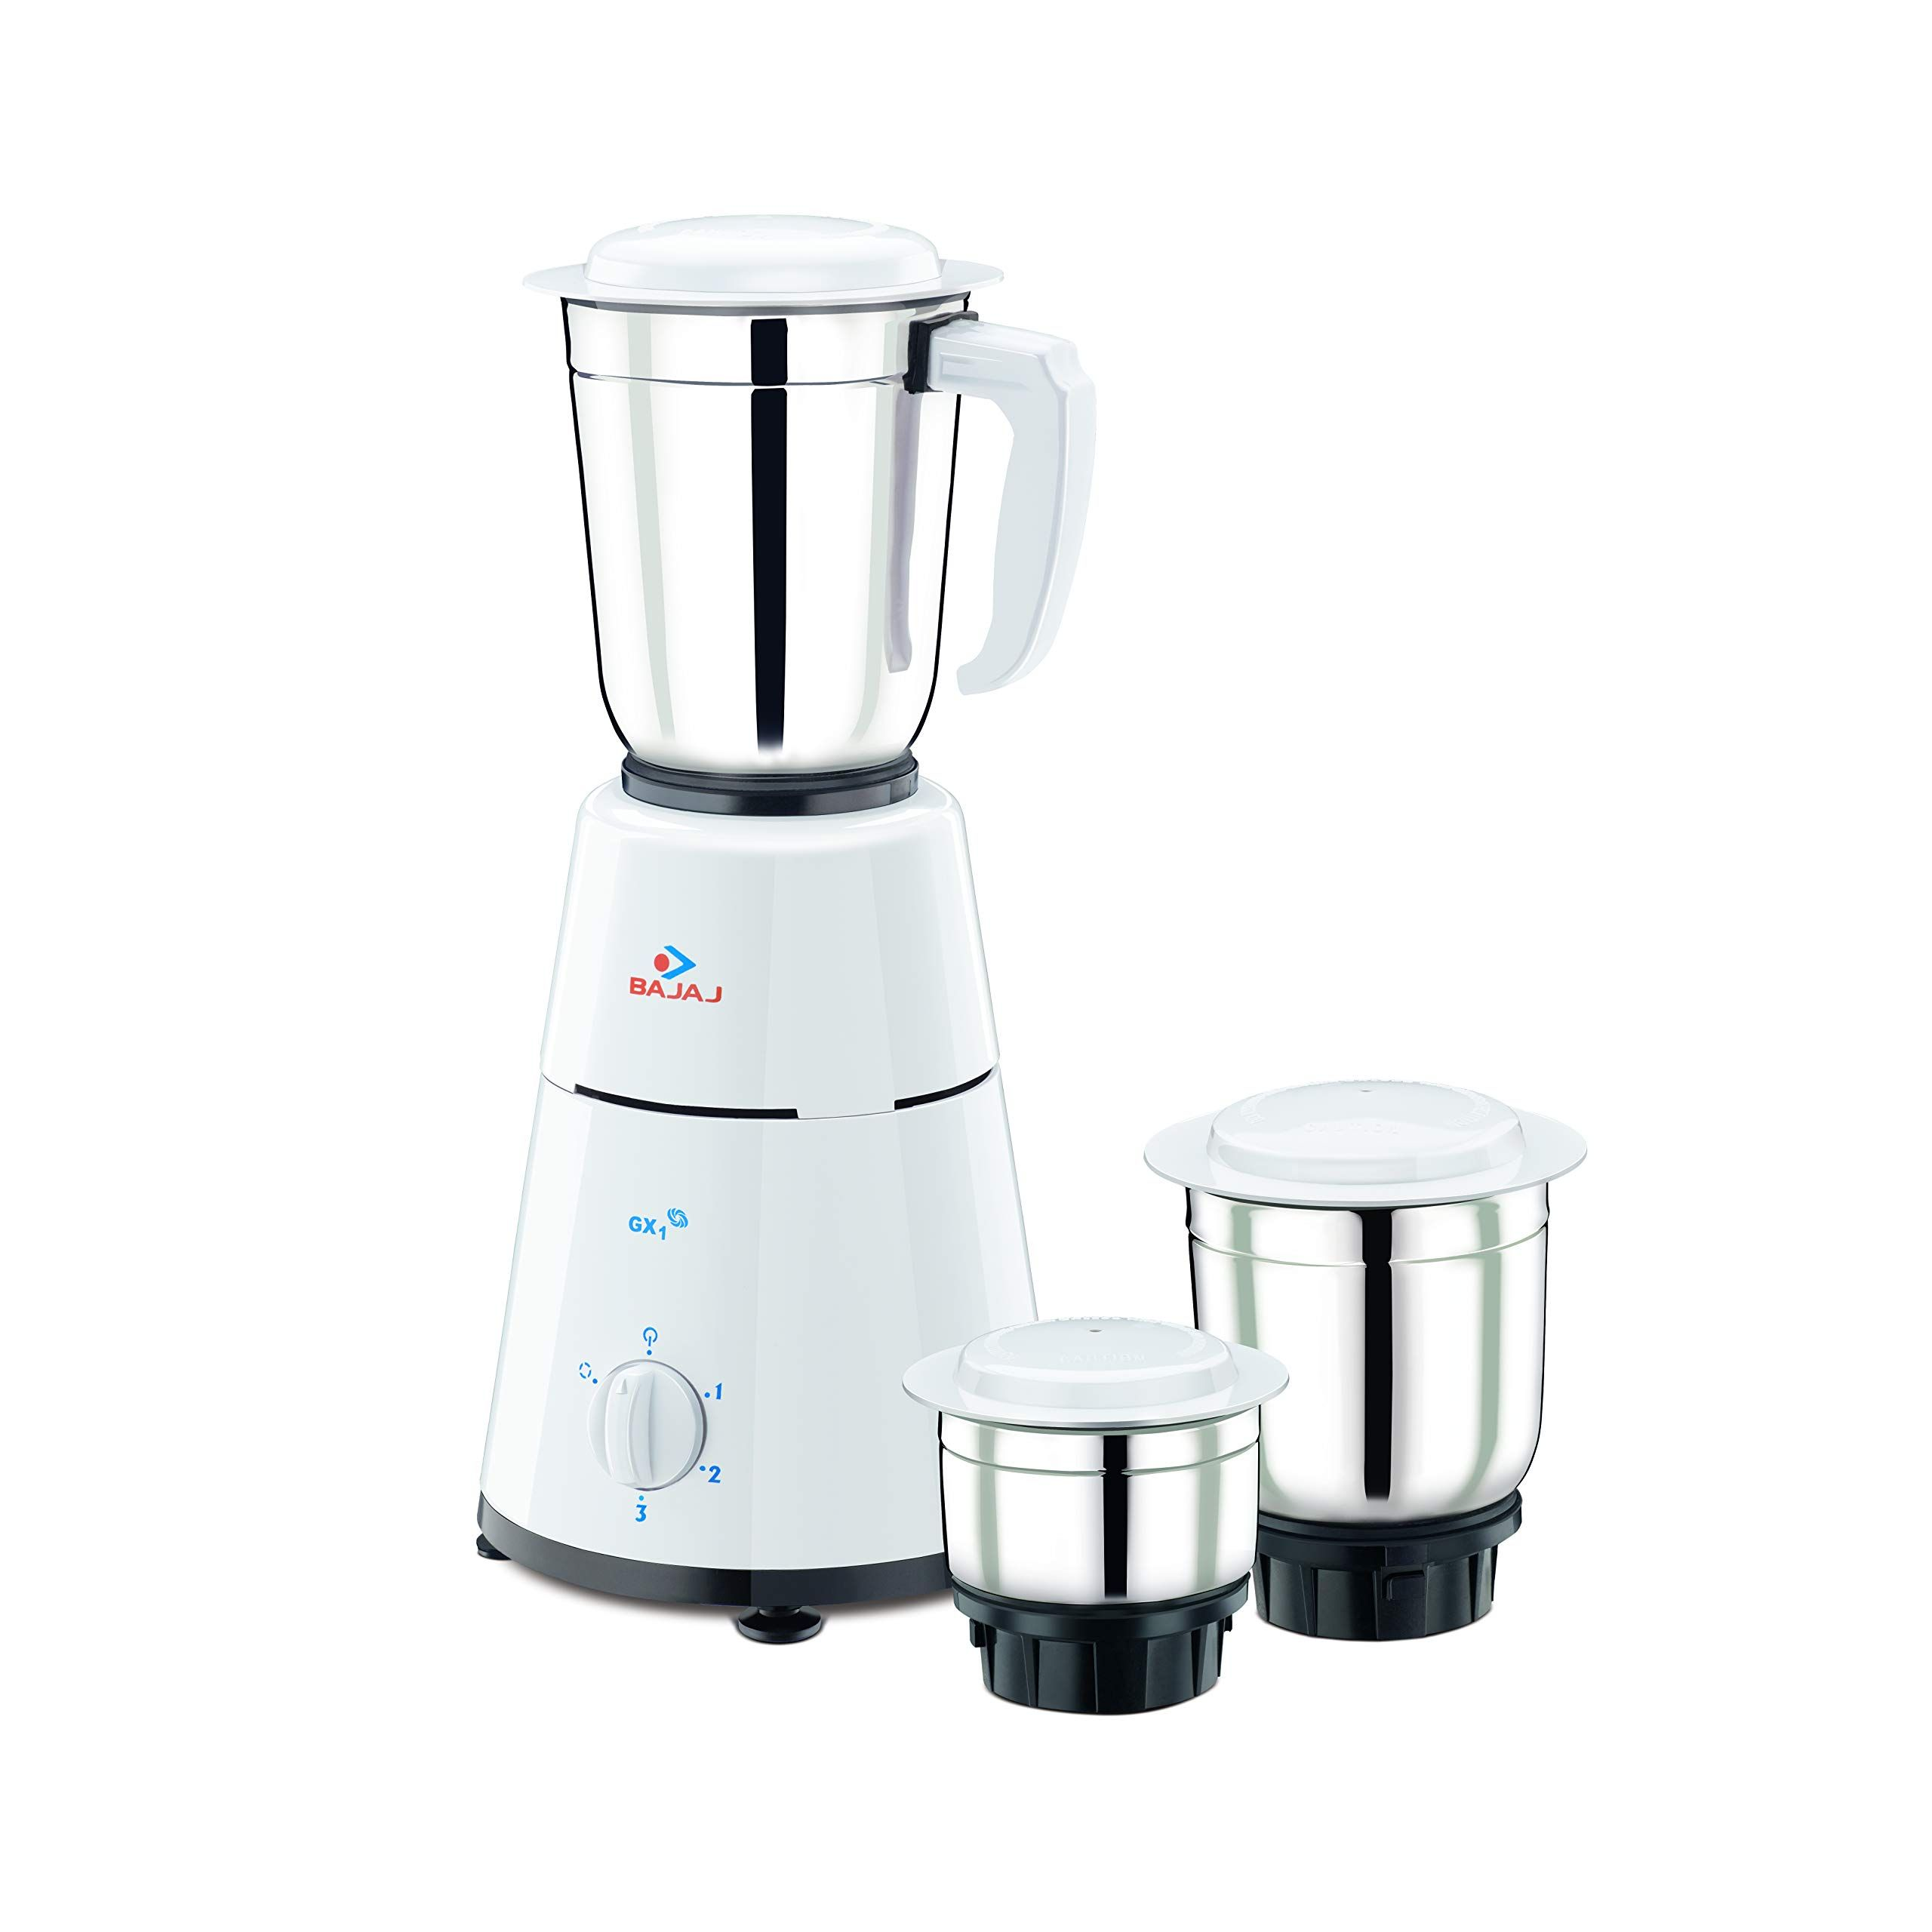 Bajaj GX1 500Watt Mixer Grinder with 3 Jar Kitchen